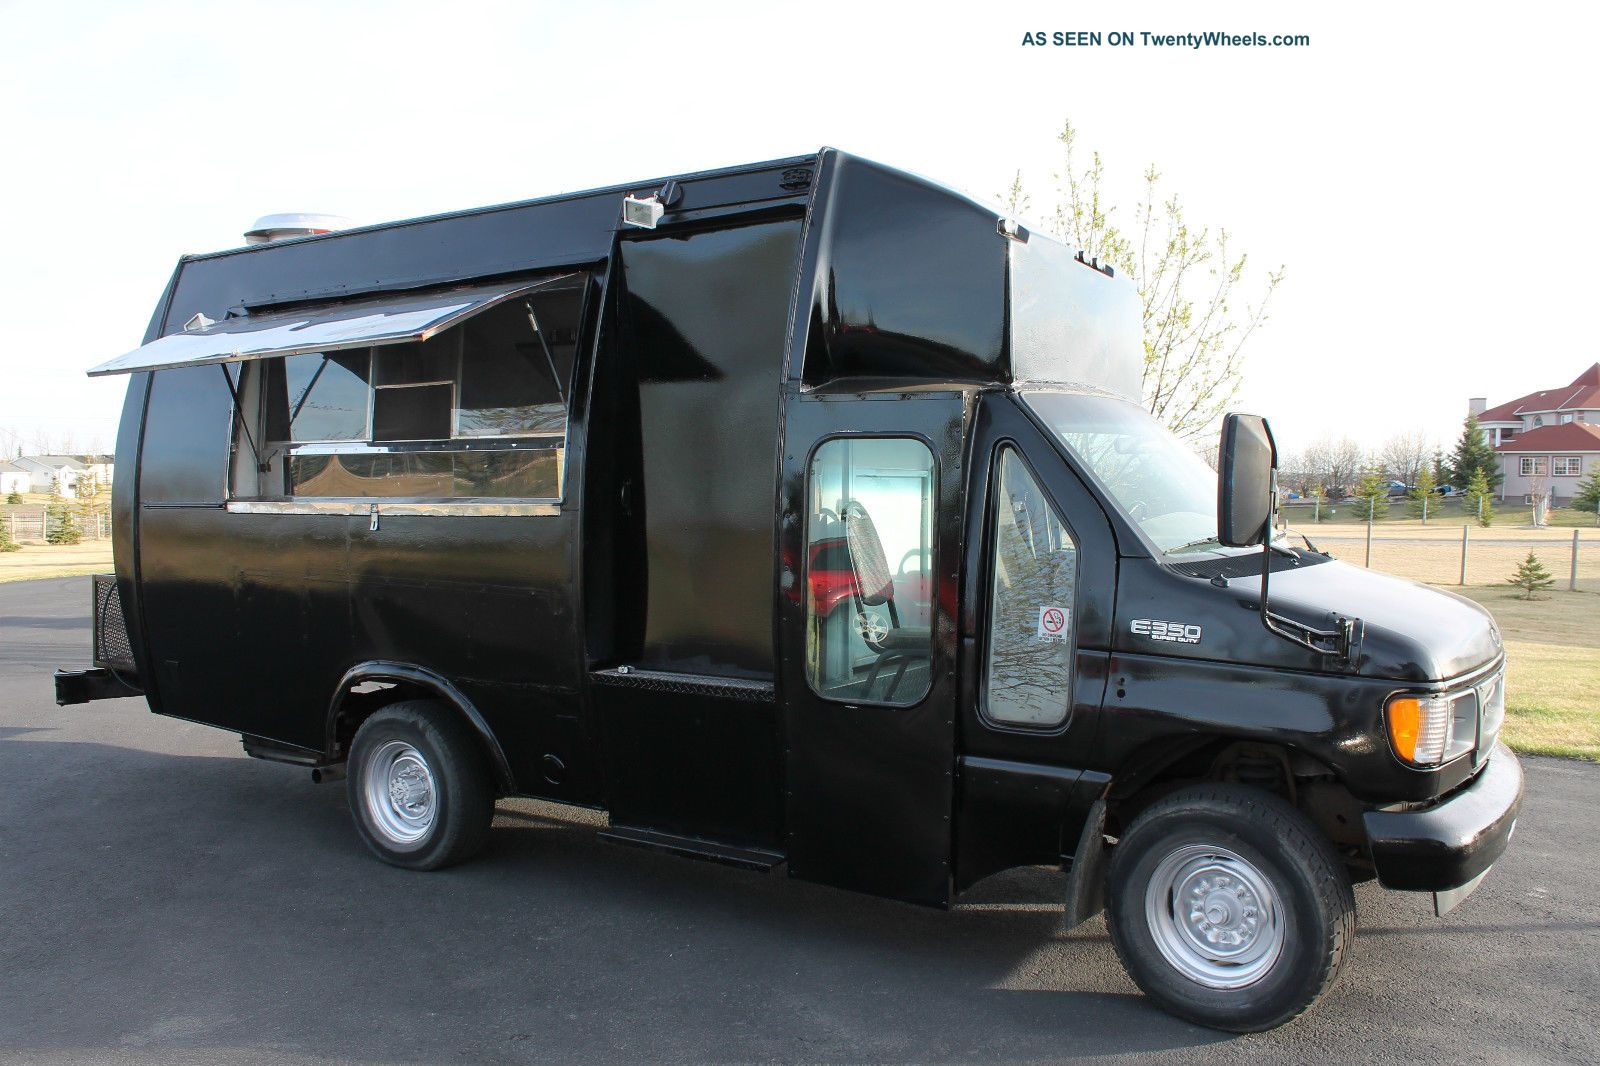 2001 Ford Food Truck - Very Stainless Steel Step Vans photo